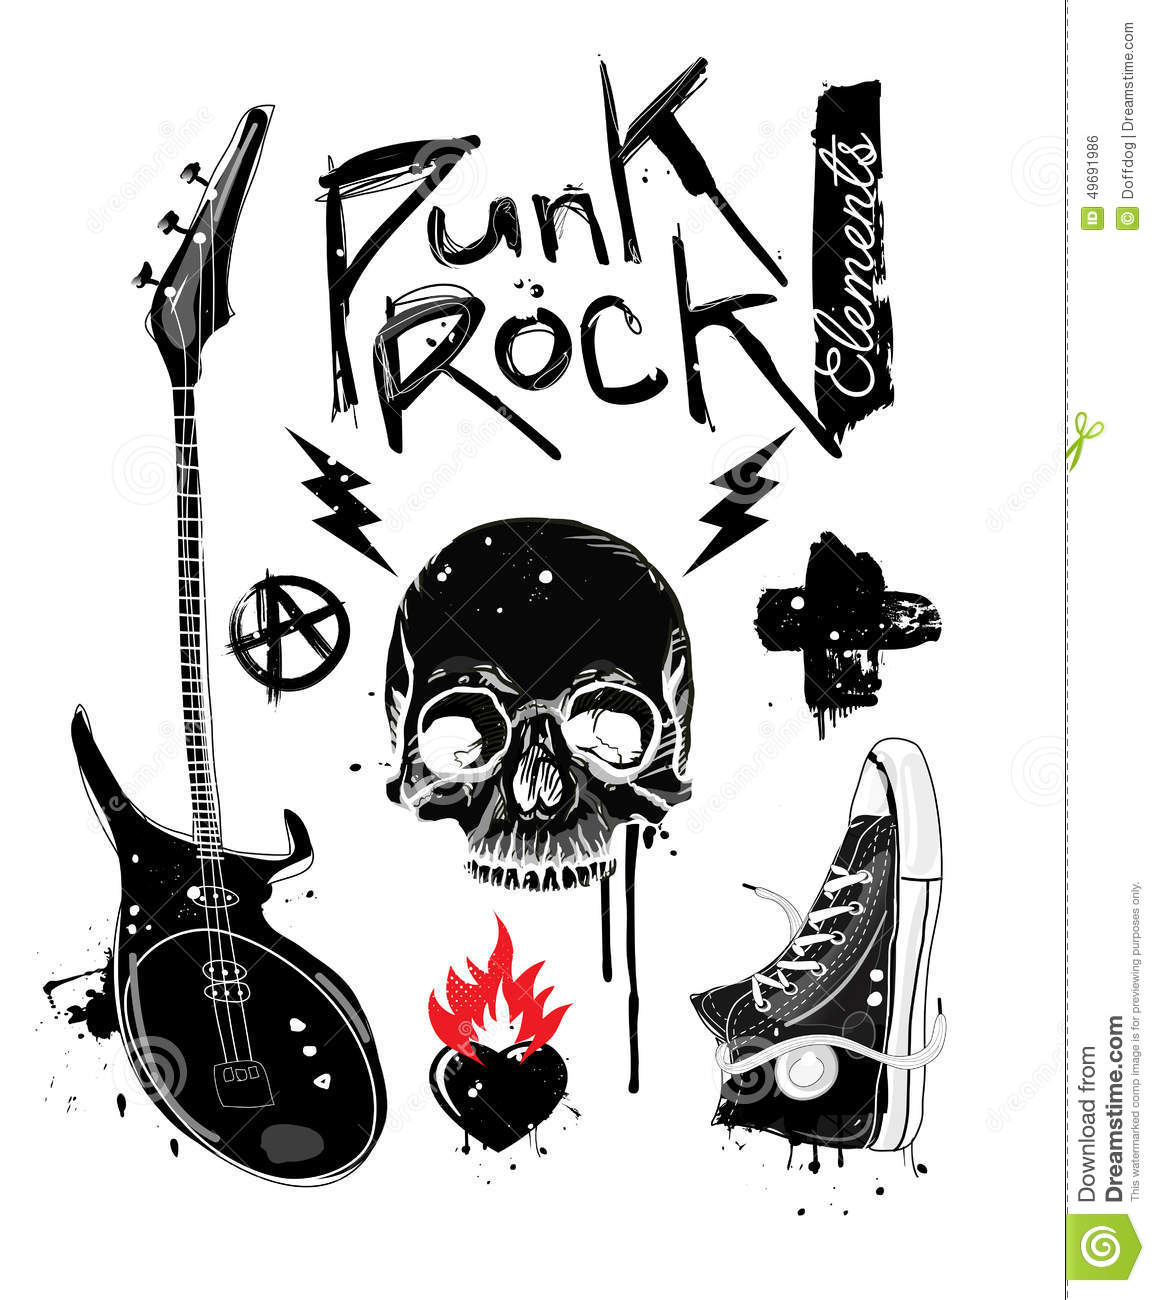 Punk Rock Elements Stock Vector - Image: 49691986